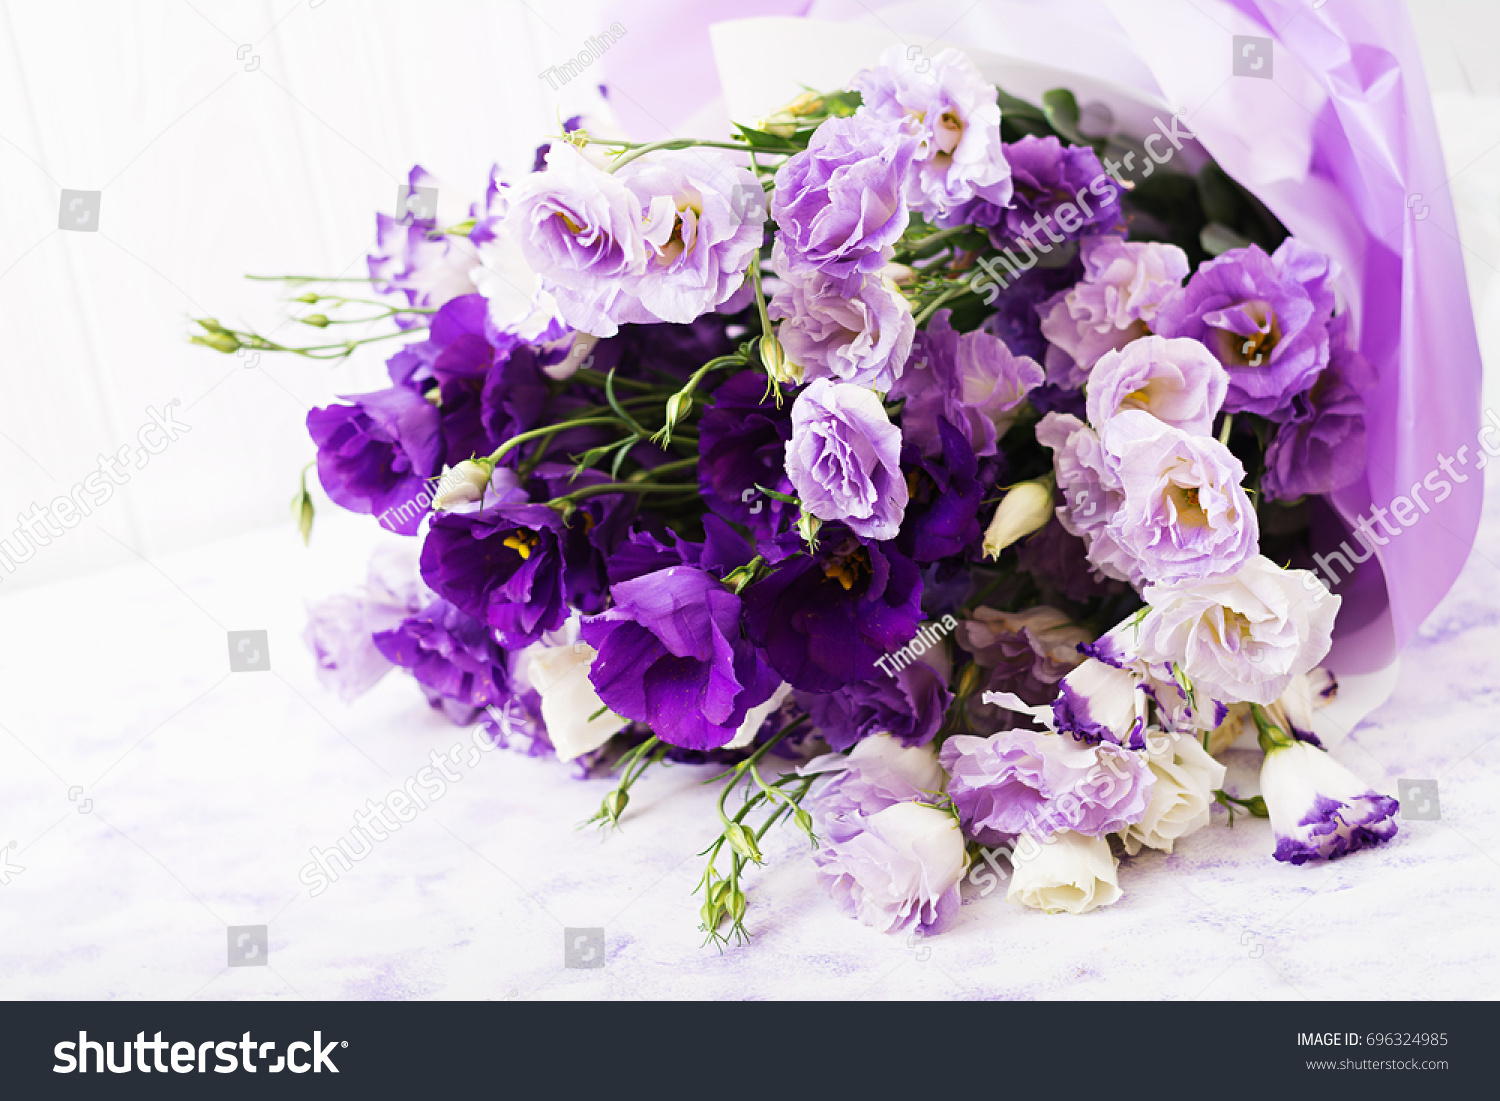 Beautiful flowers bouquet mix of white purple and violet eustoma id 696324985 izmirmasajfo